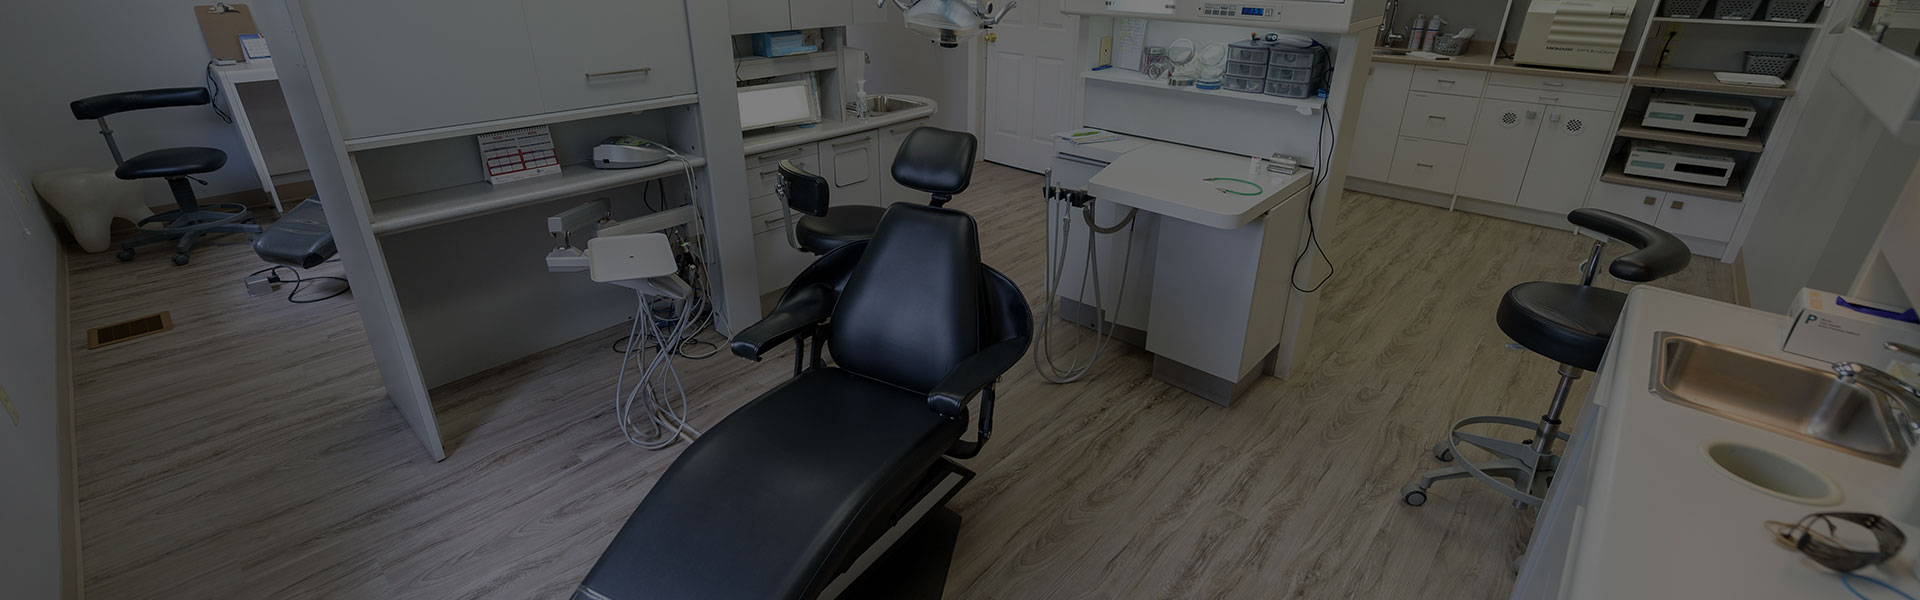 alliance_dental-coldbrook-3